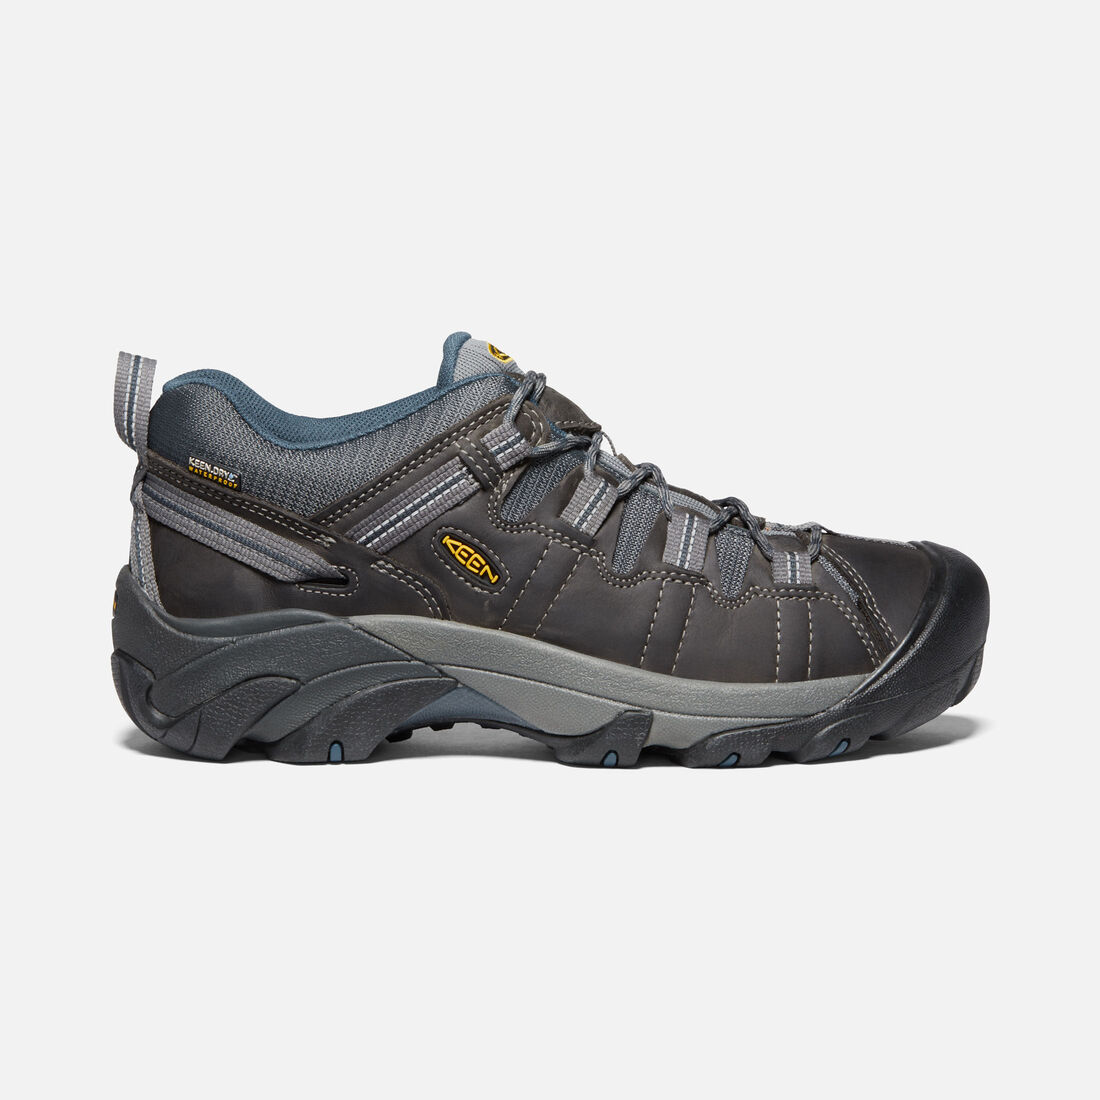 Men's Targhee II in Gargoyle/Midnight Navy - large view.